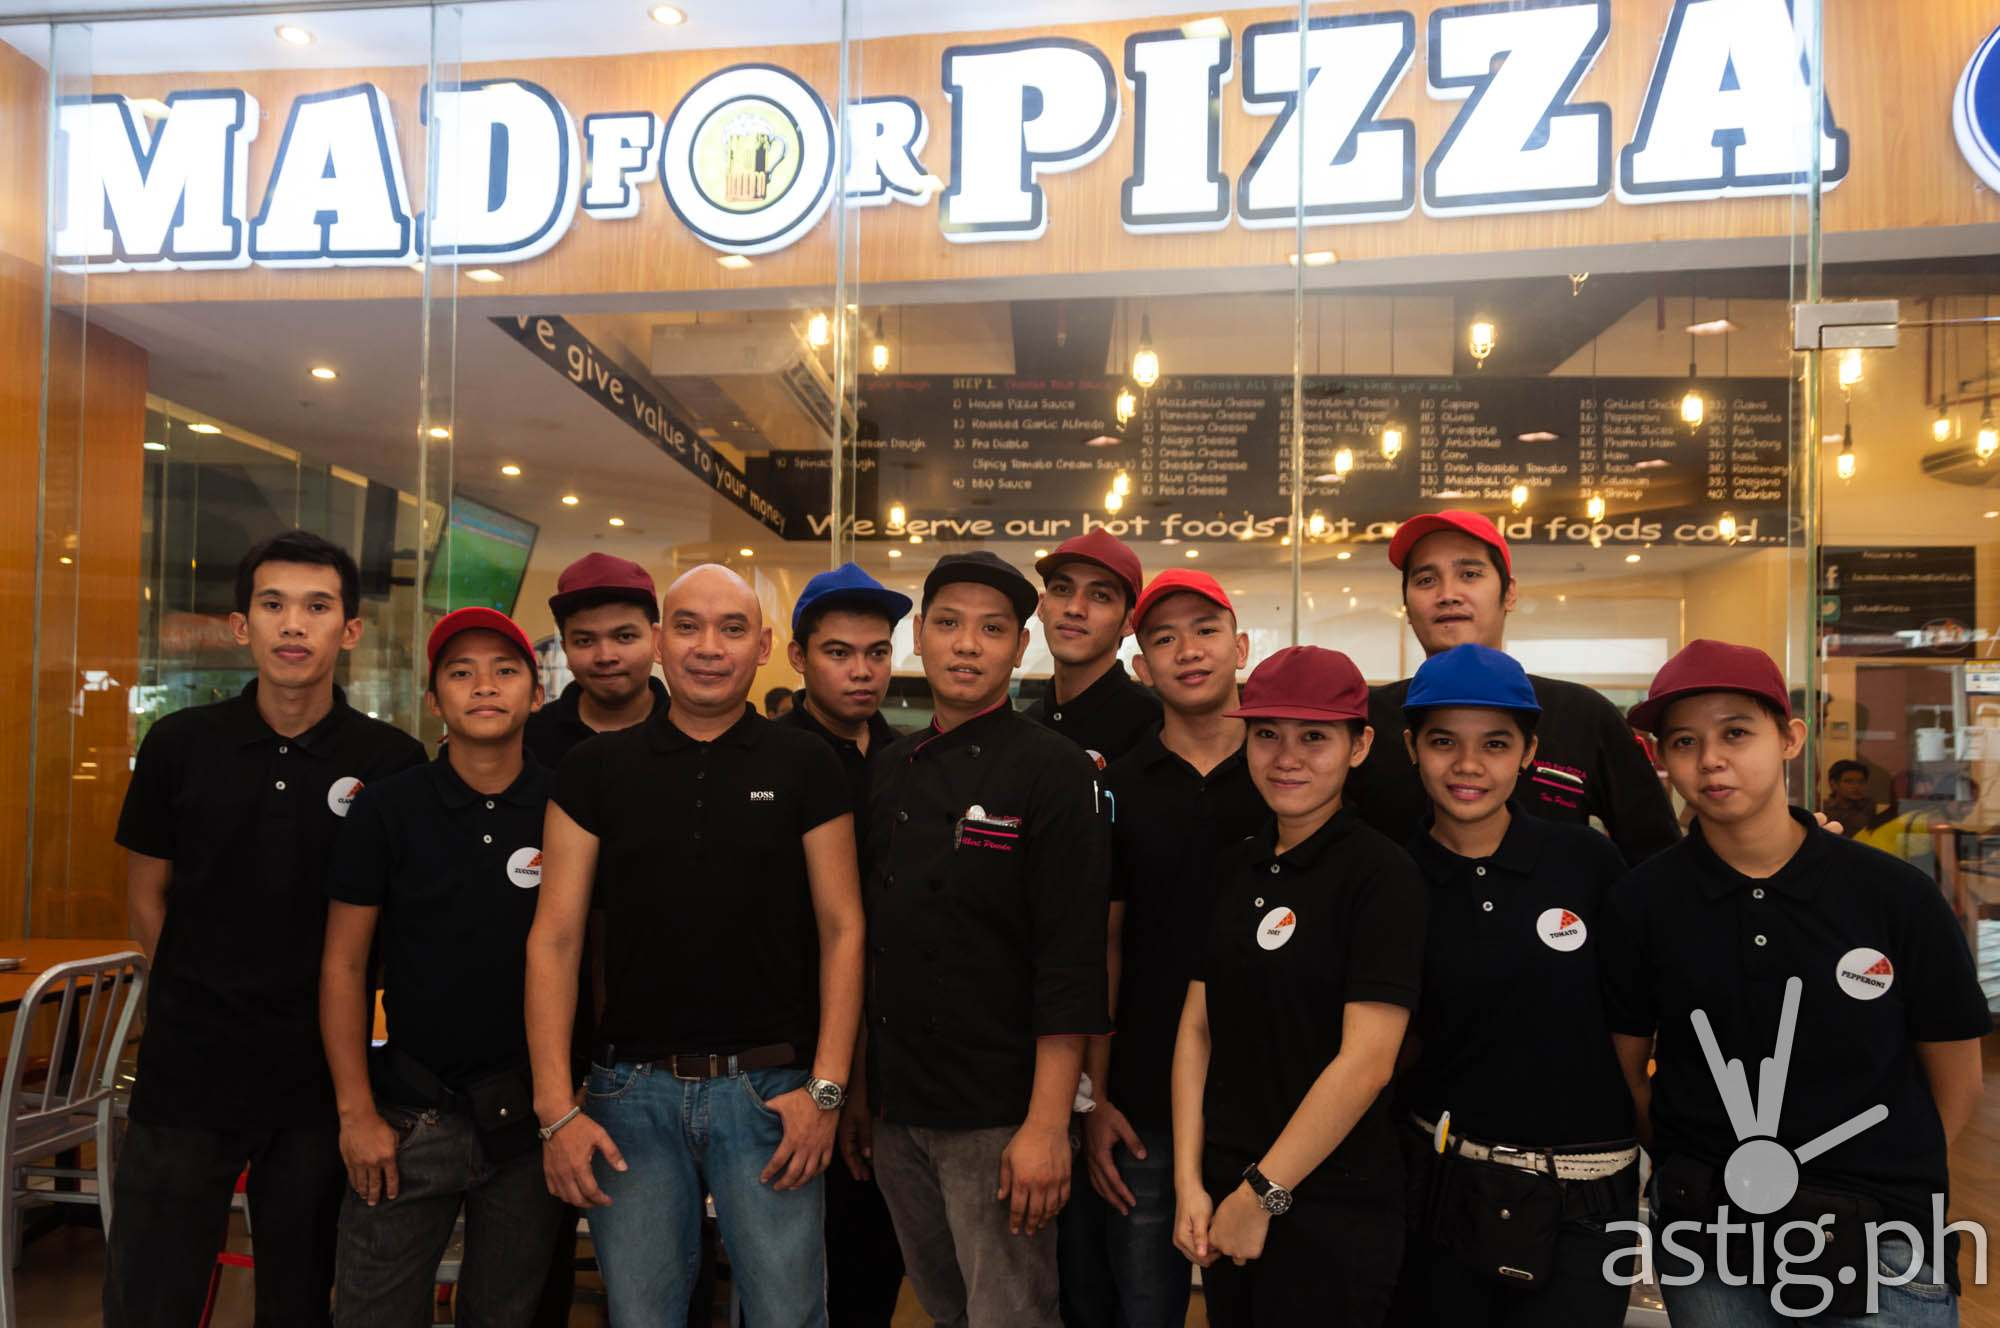 Mad for Pizza servers use names of ingredients as alias such as Pepper, Olives, Oregano, etc